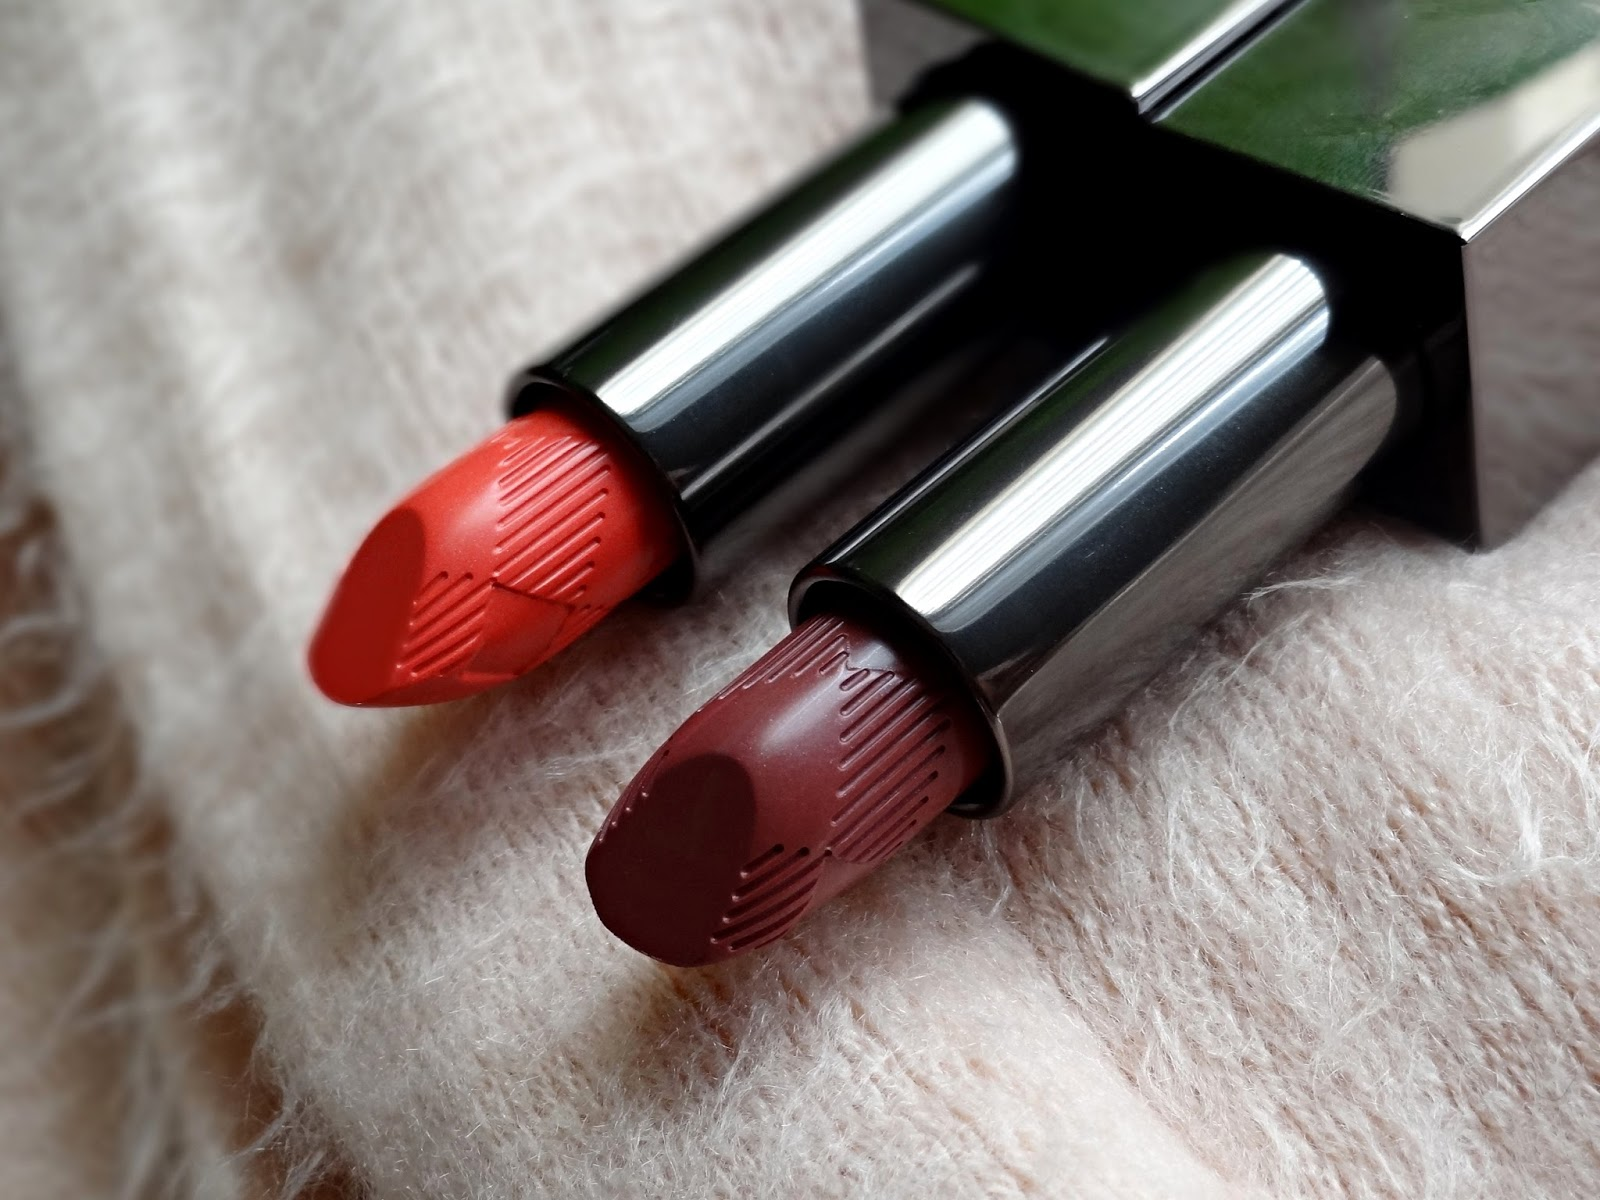 Burberry Kisses Lipsticks in Coral Pink & Rose Blush